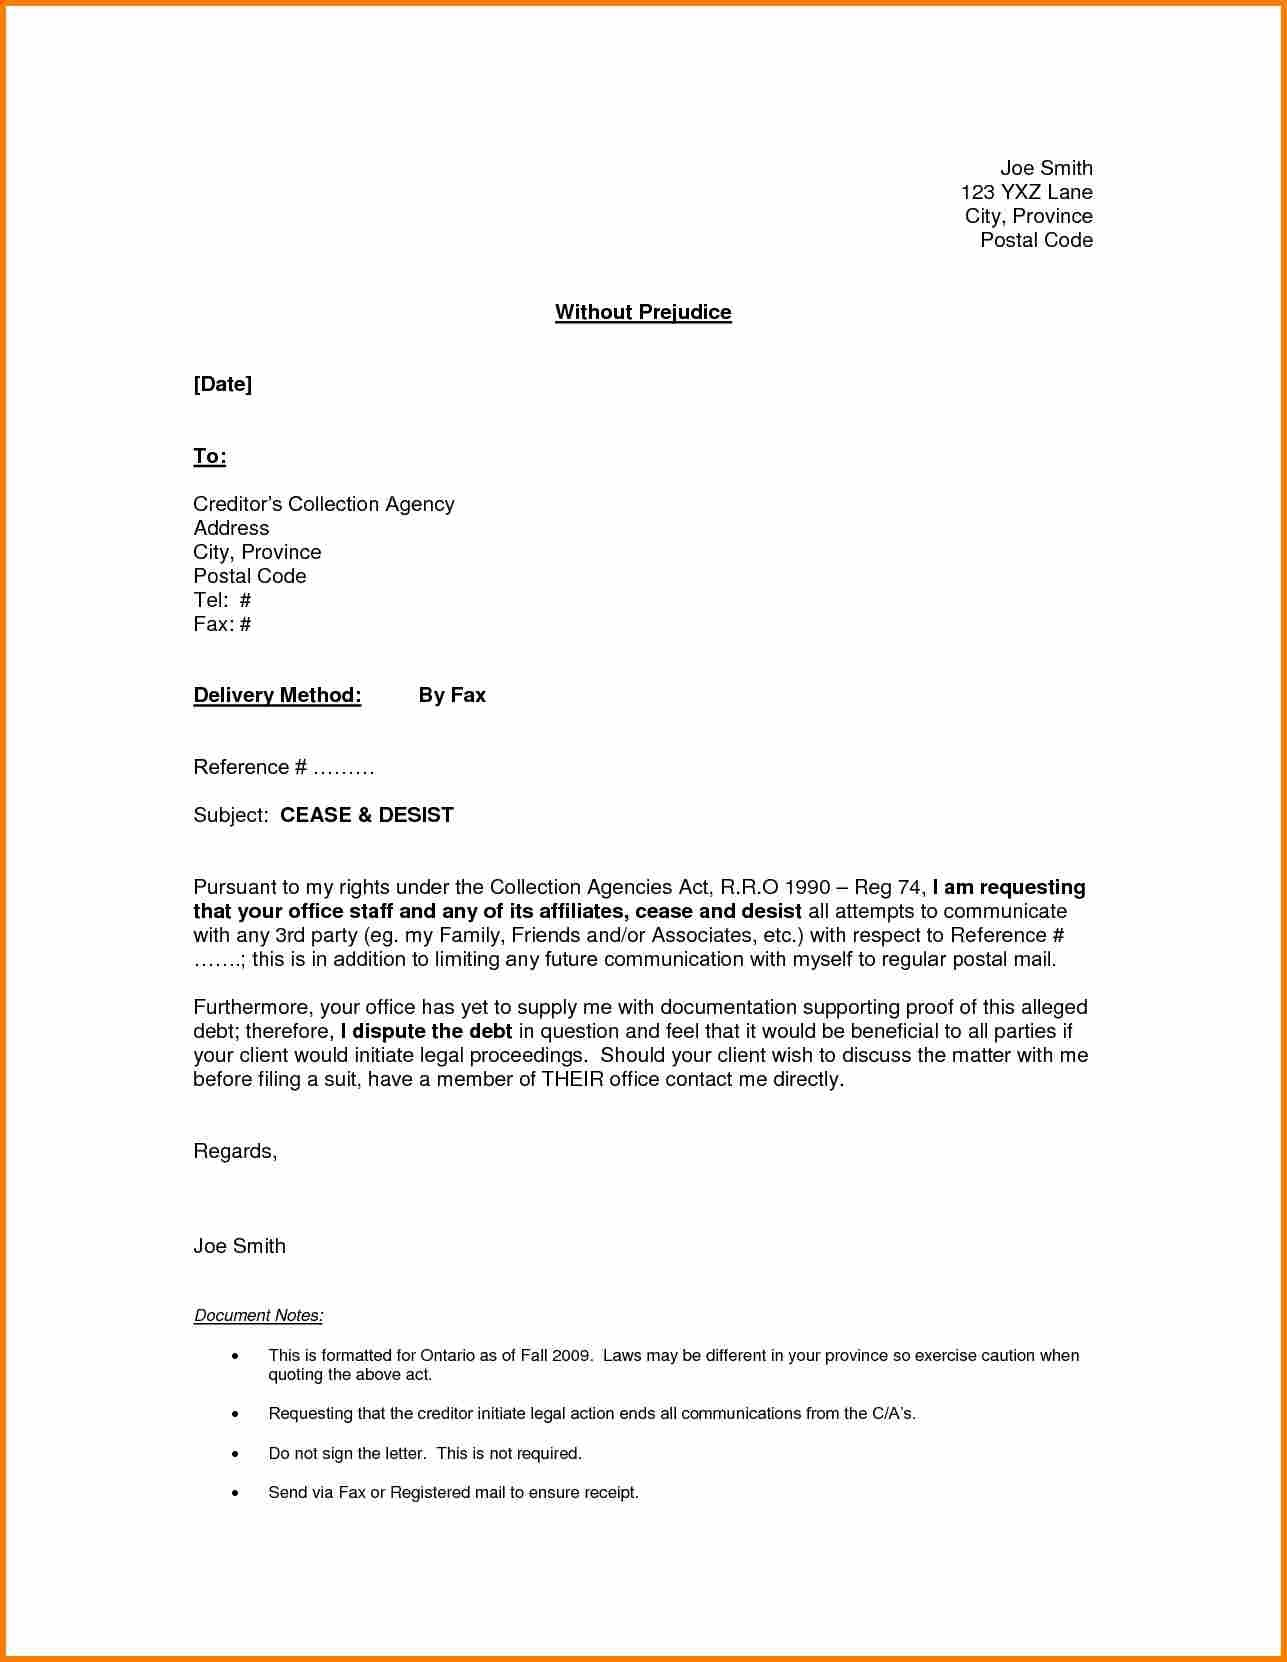 Cease and desist collection agency letter template for Cease and desist letter template for debt collectors